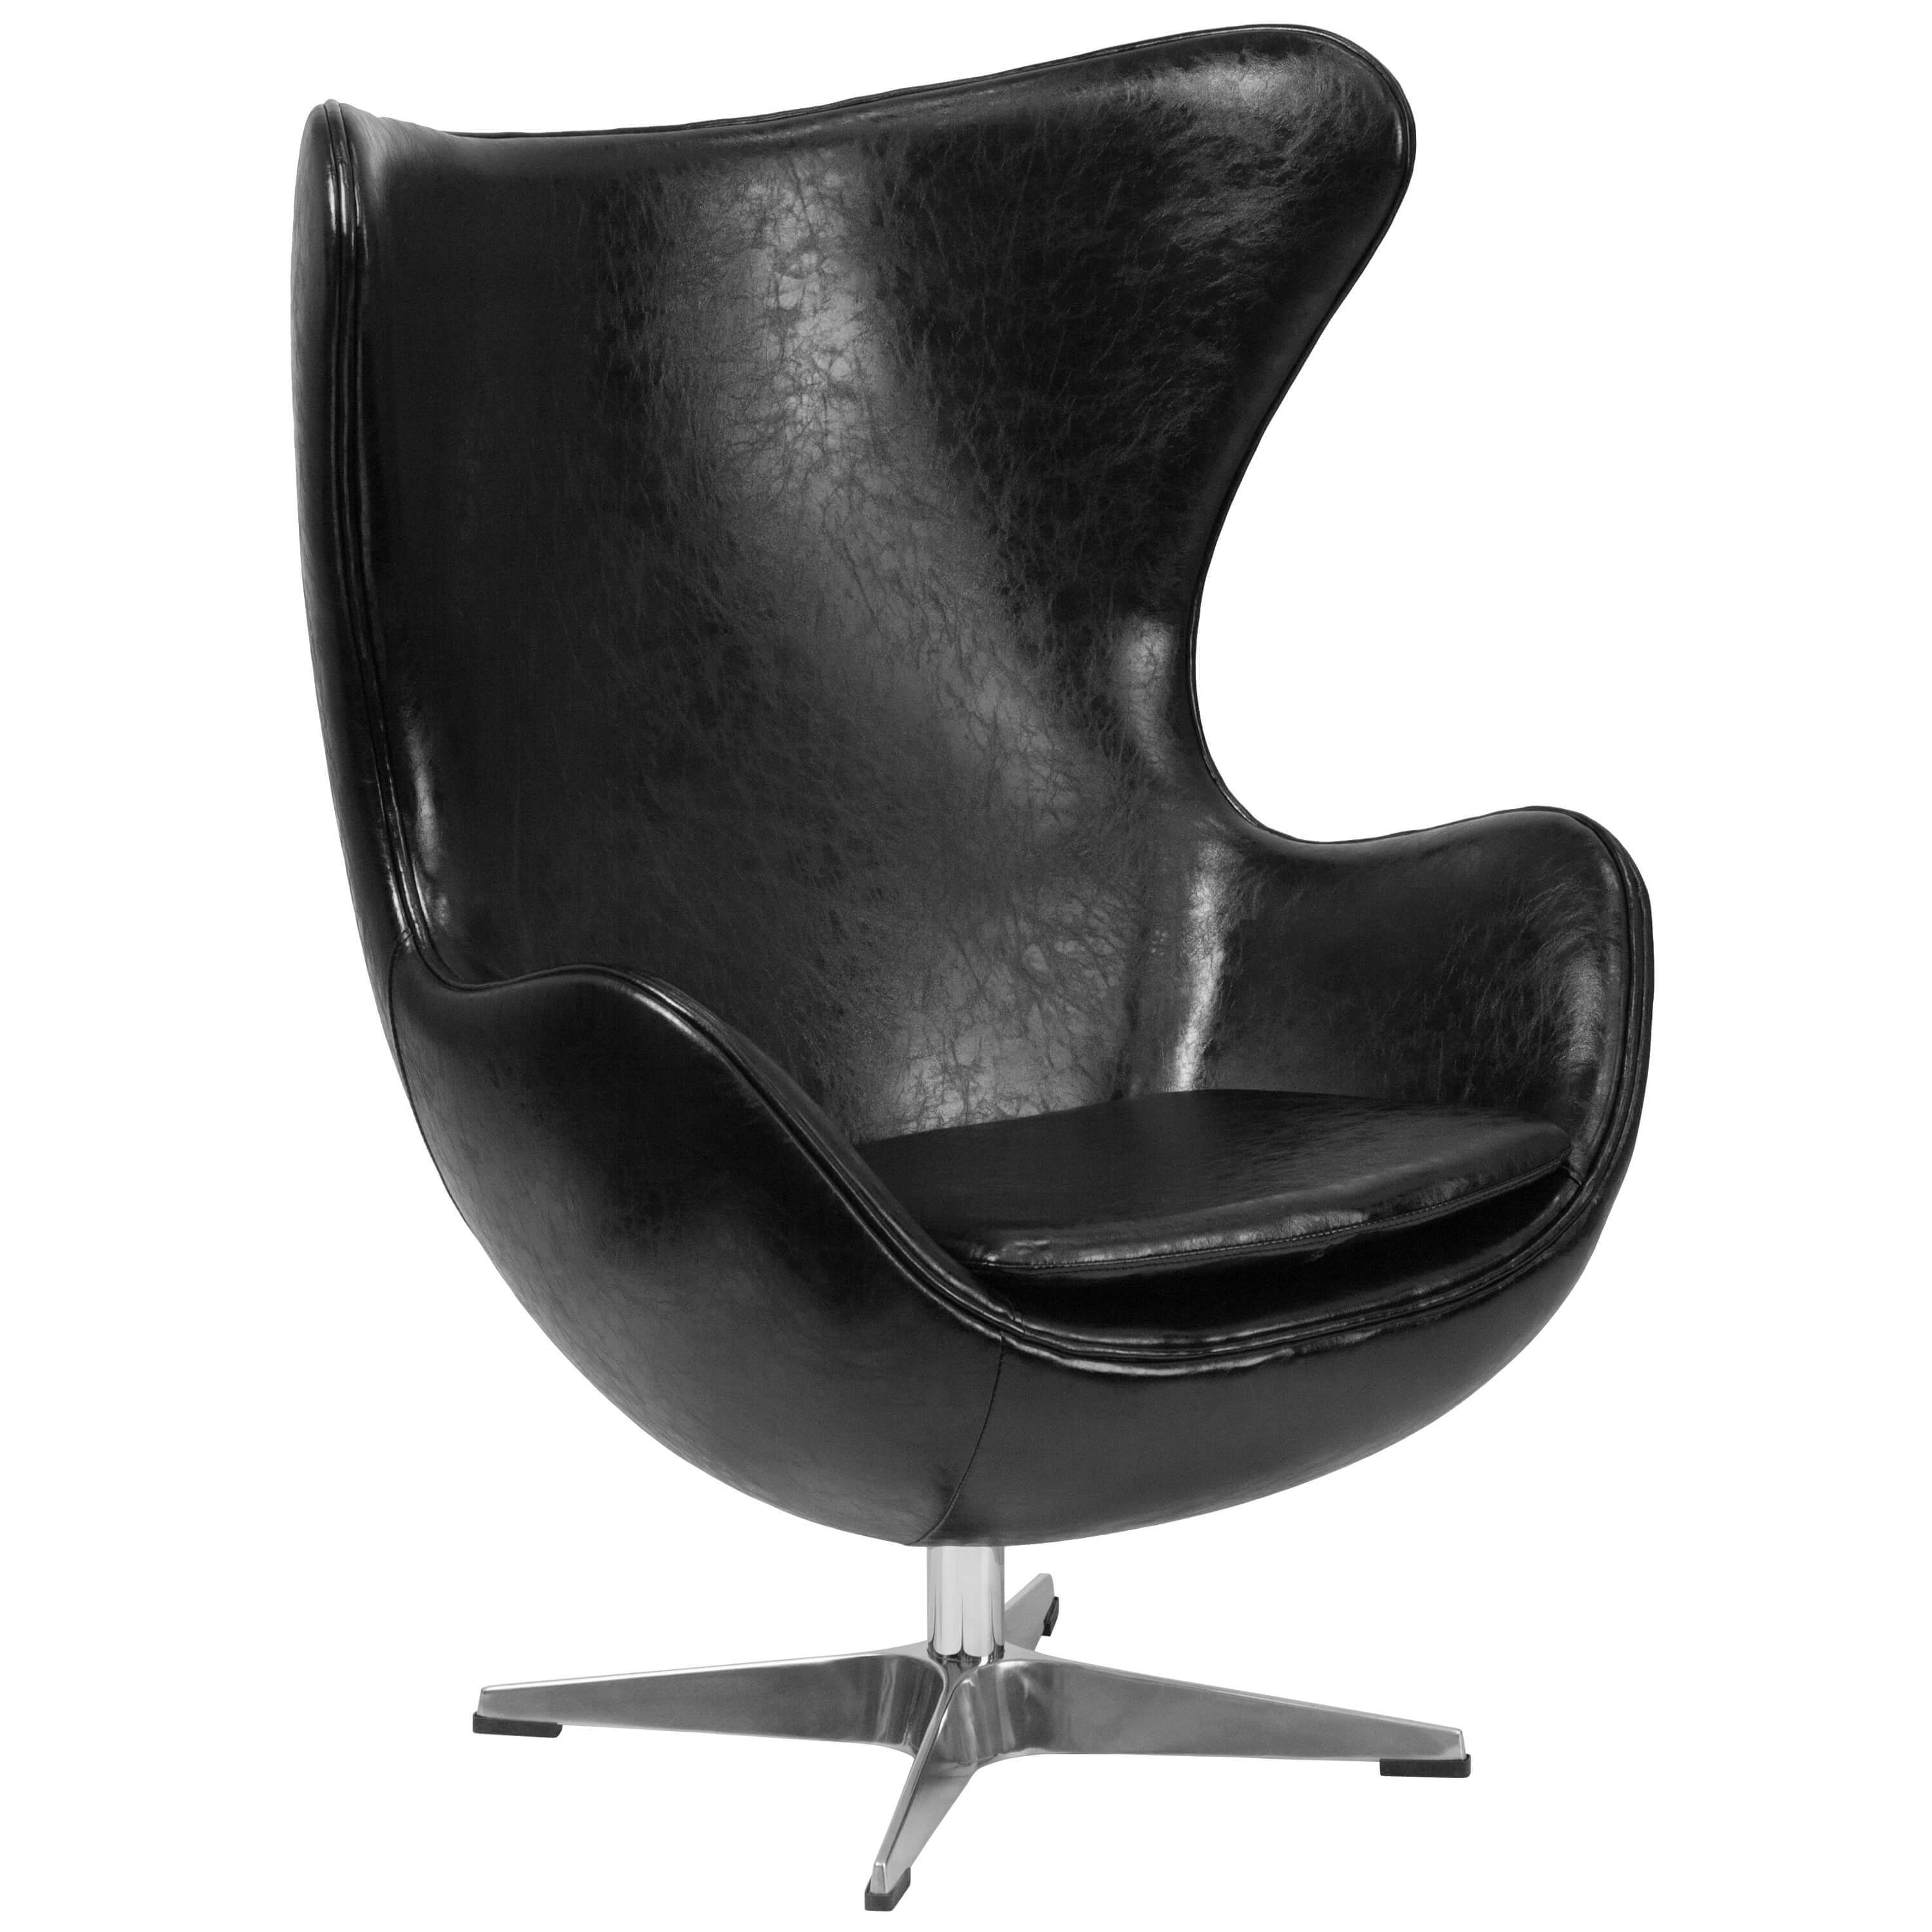 Office lounge chairs CUB ZB 9 GG ALF